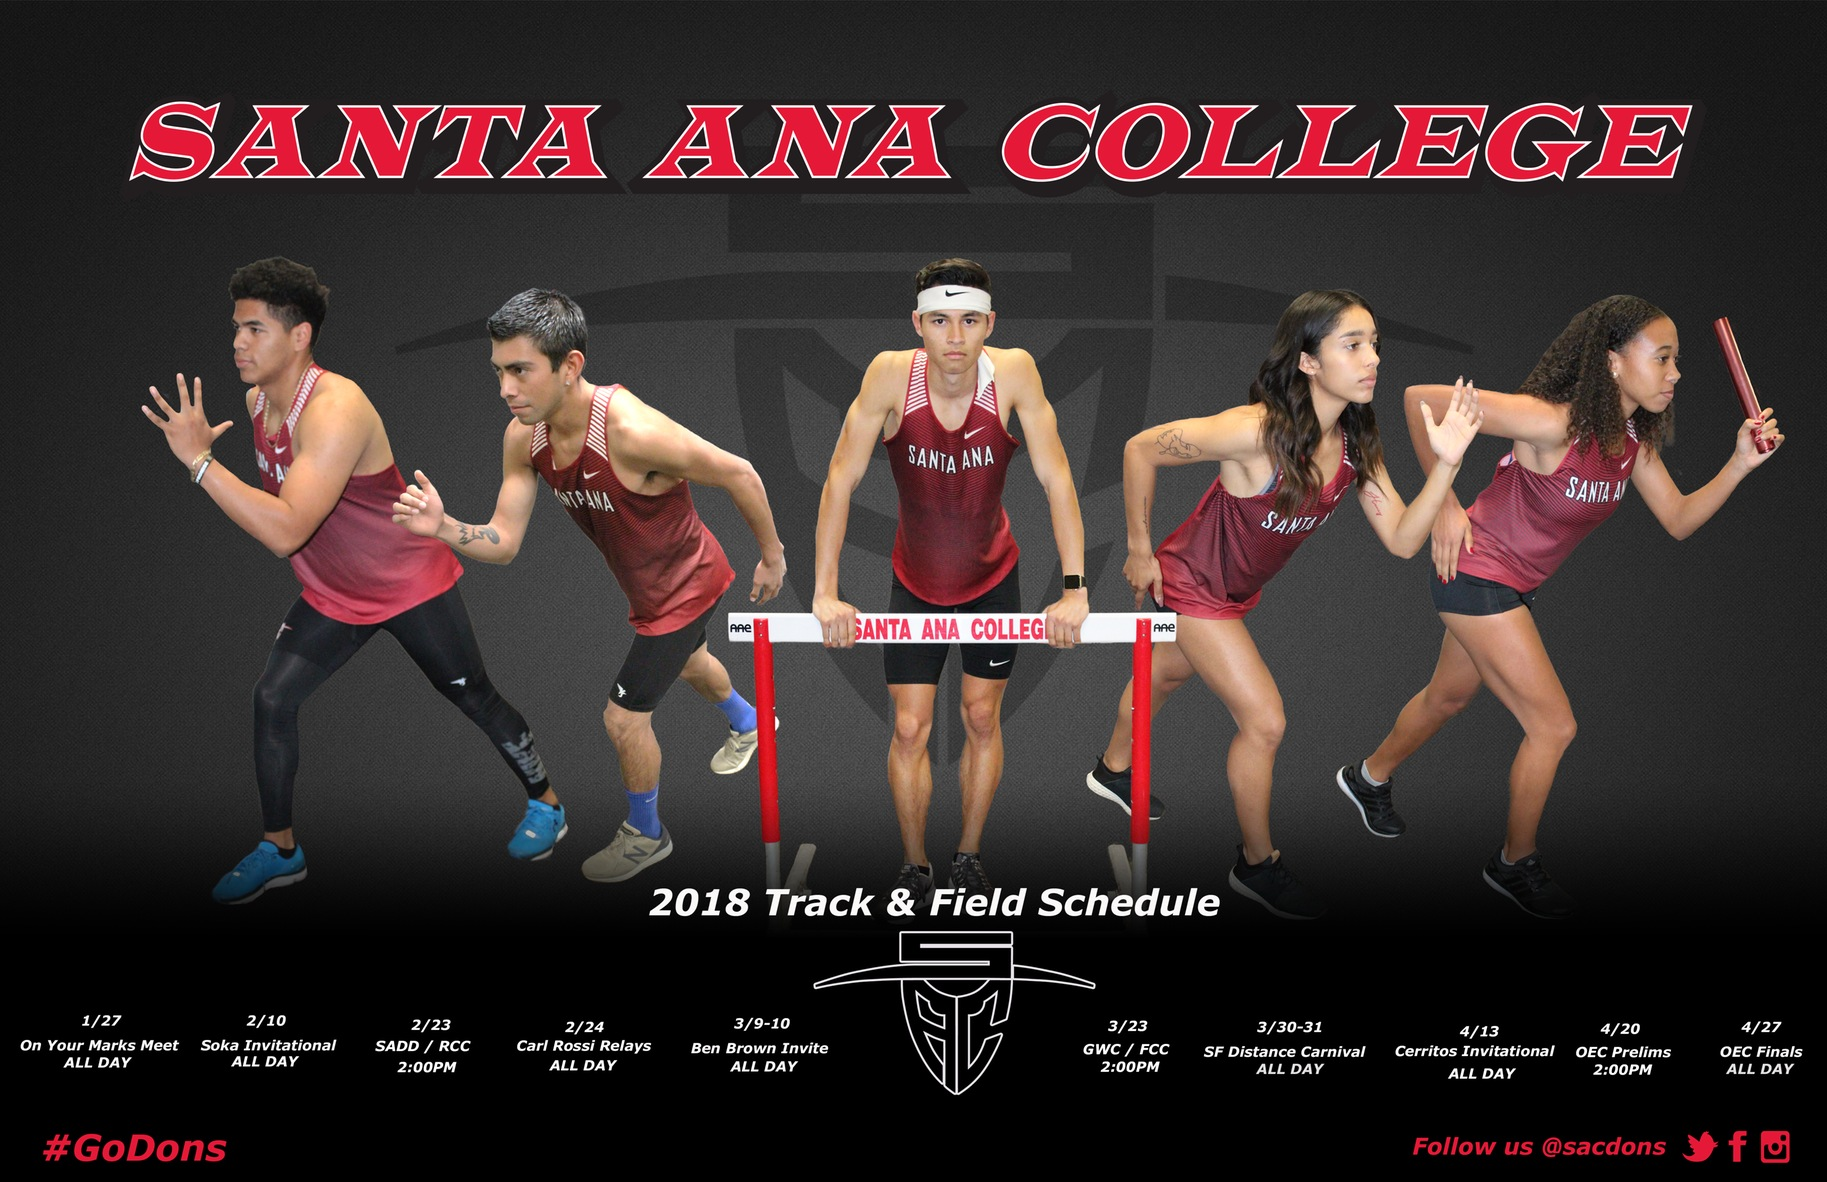 Dons Start Off 2018 Season with On Your Marks Meet